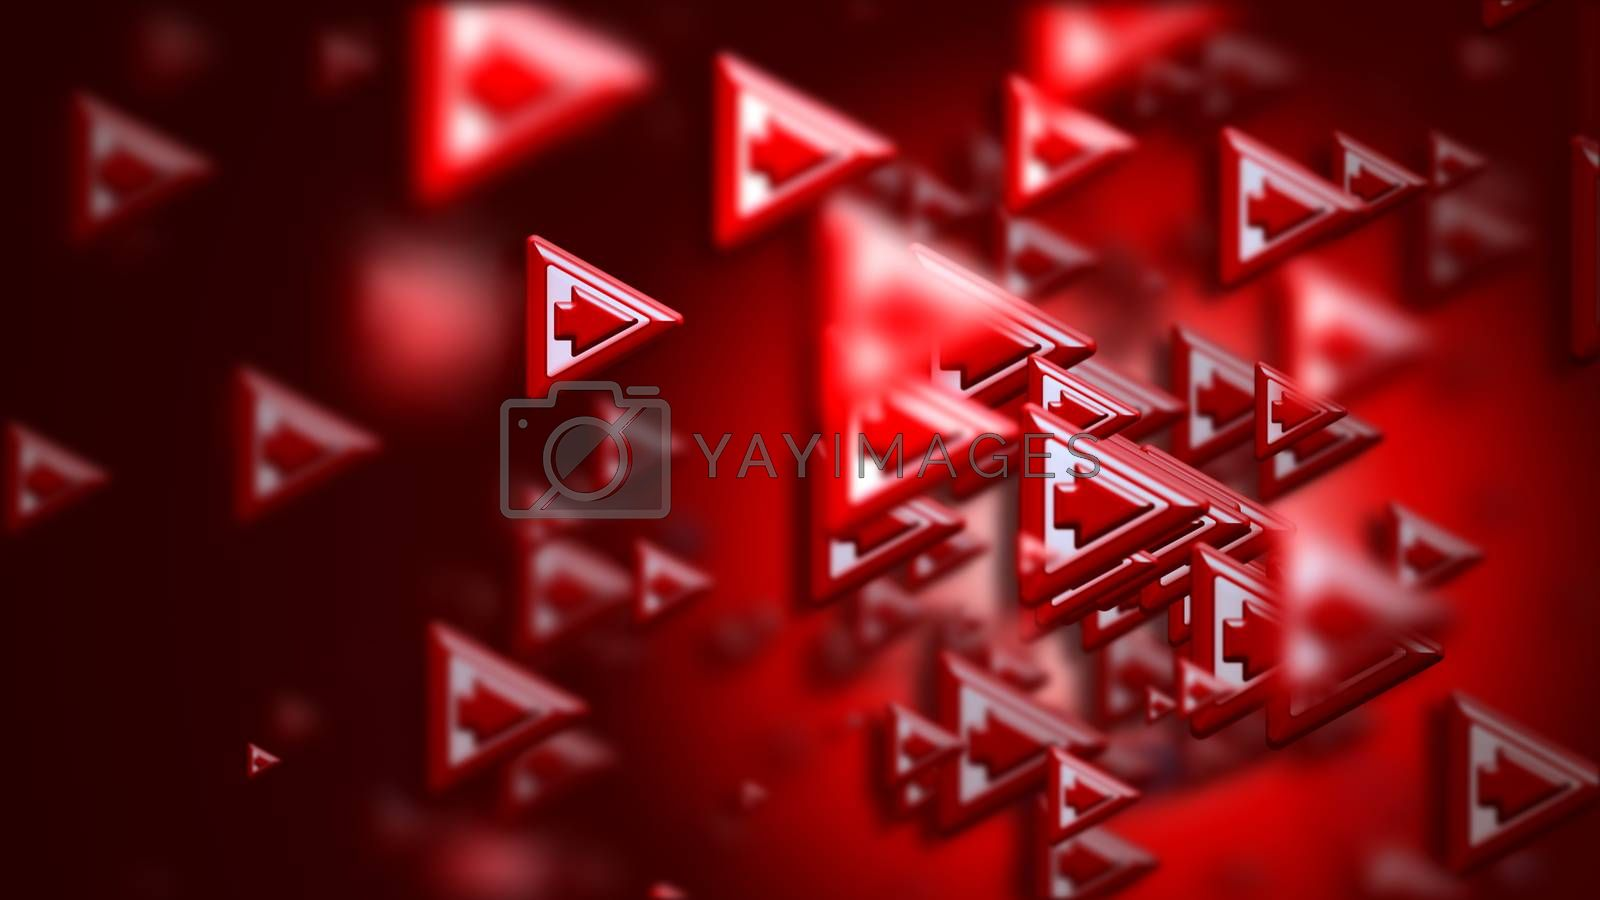 Moving group of arrows on a red backdrop, as a concept and a sign of the wrong choice of internet community in cyberspace for determination direction and areas of cooperation of the crowd